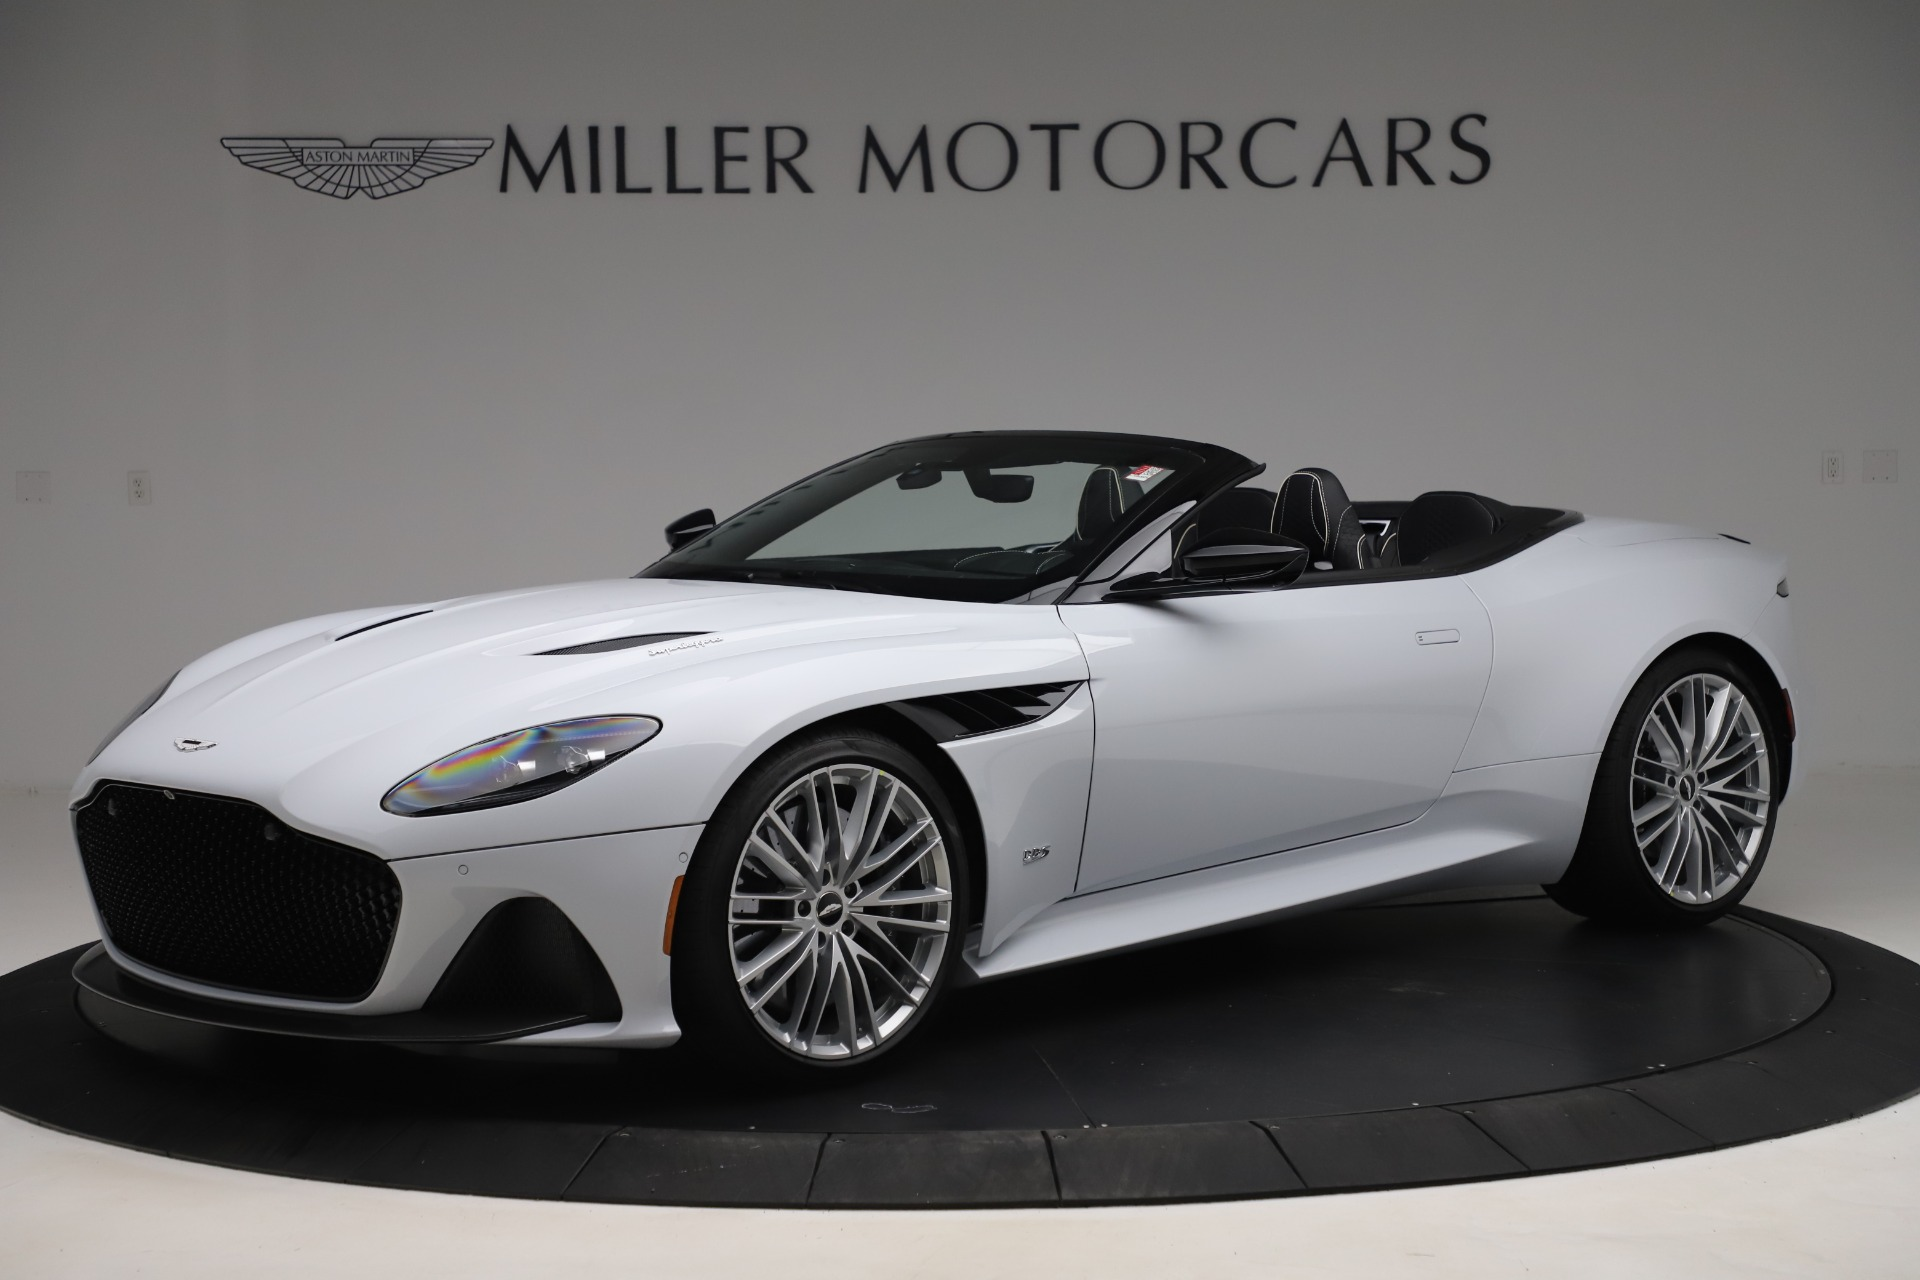 New 2020 Aston Martin DBS Superleggera Volante Convertible for sale $353,931 at Aston Martin of Greenwich in Greenwich CT 06830 1